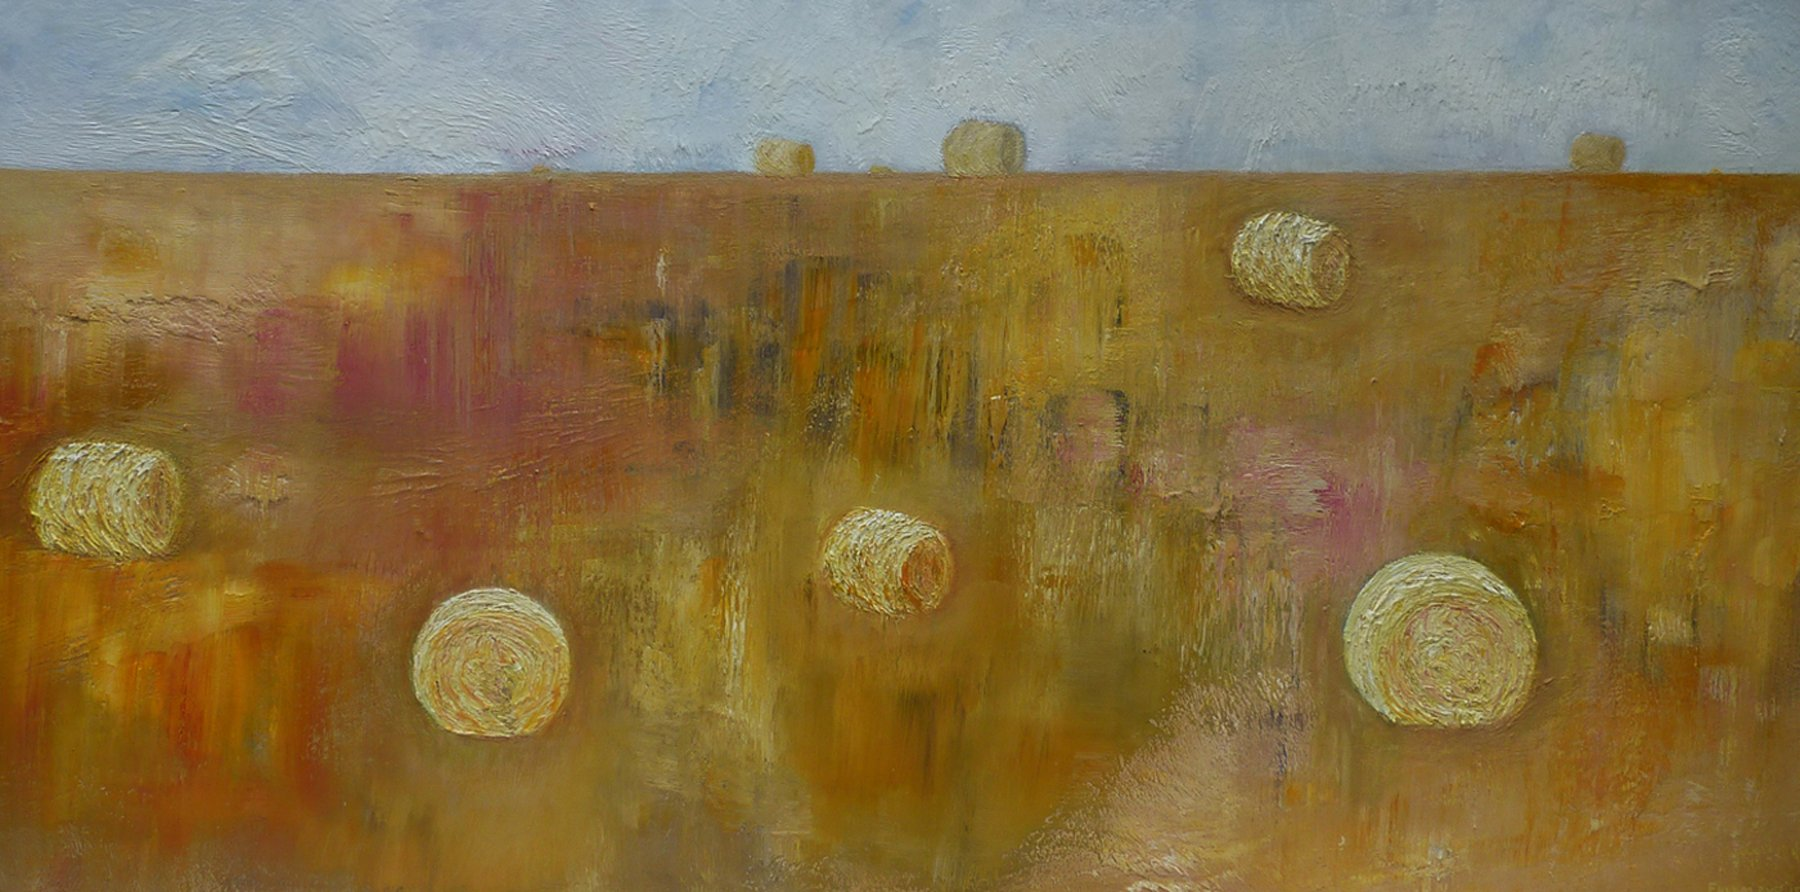 Fields of Gold - Oil on Canvas 66cm x 112cm